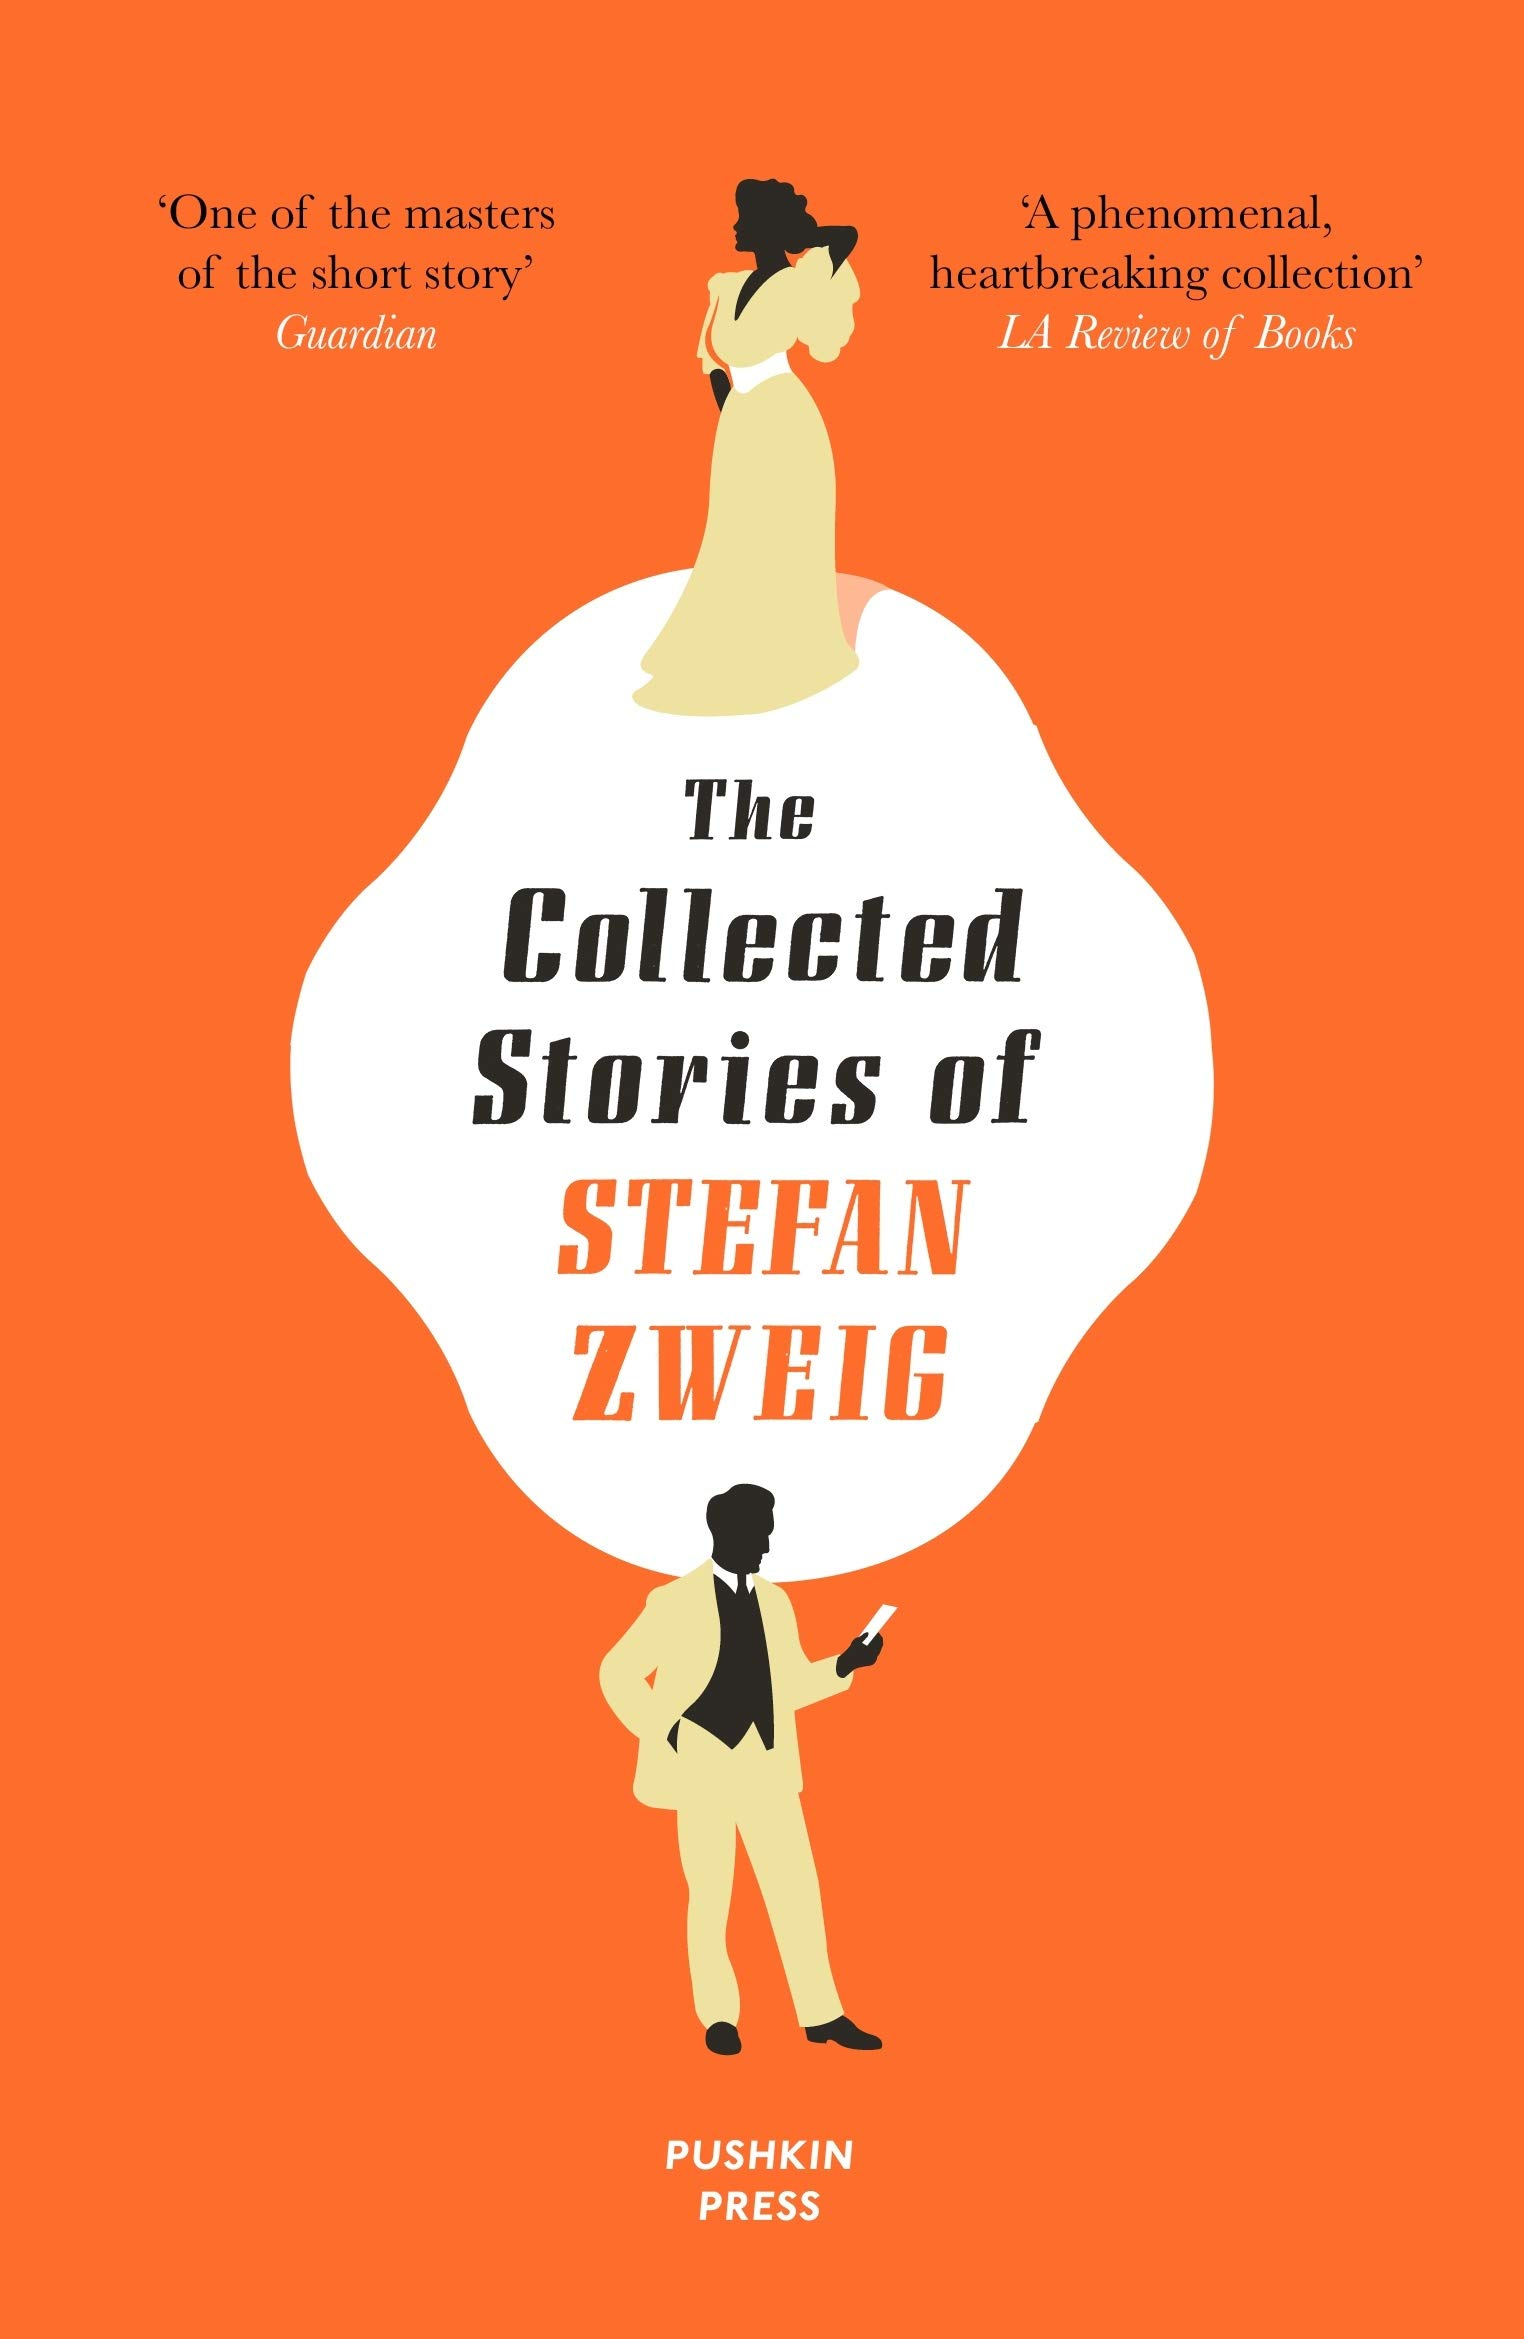 Download The Collected Stories Of Stefan Zweig By Stefan Zweig